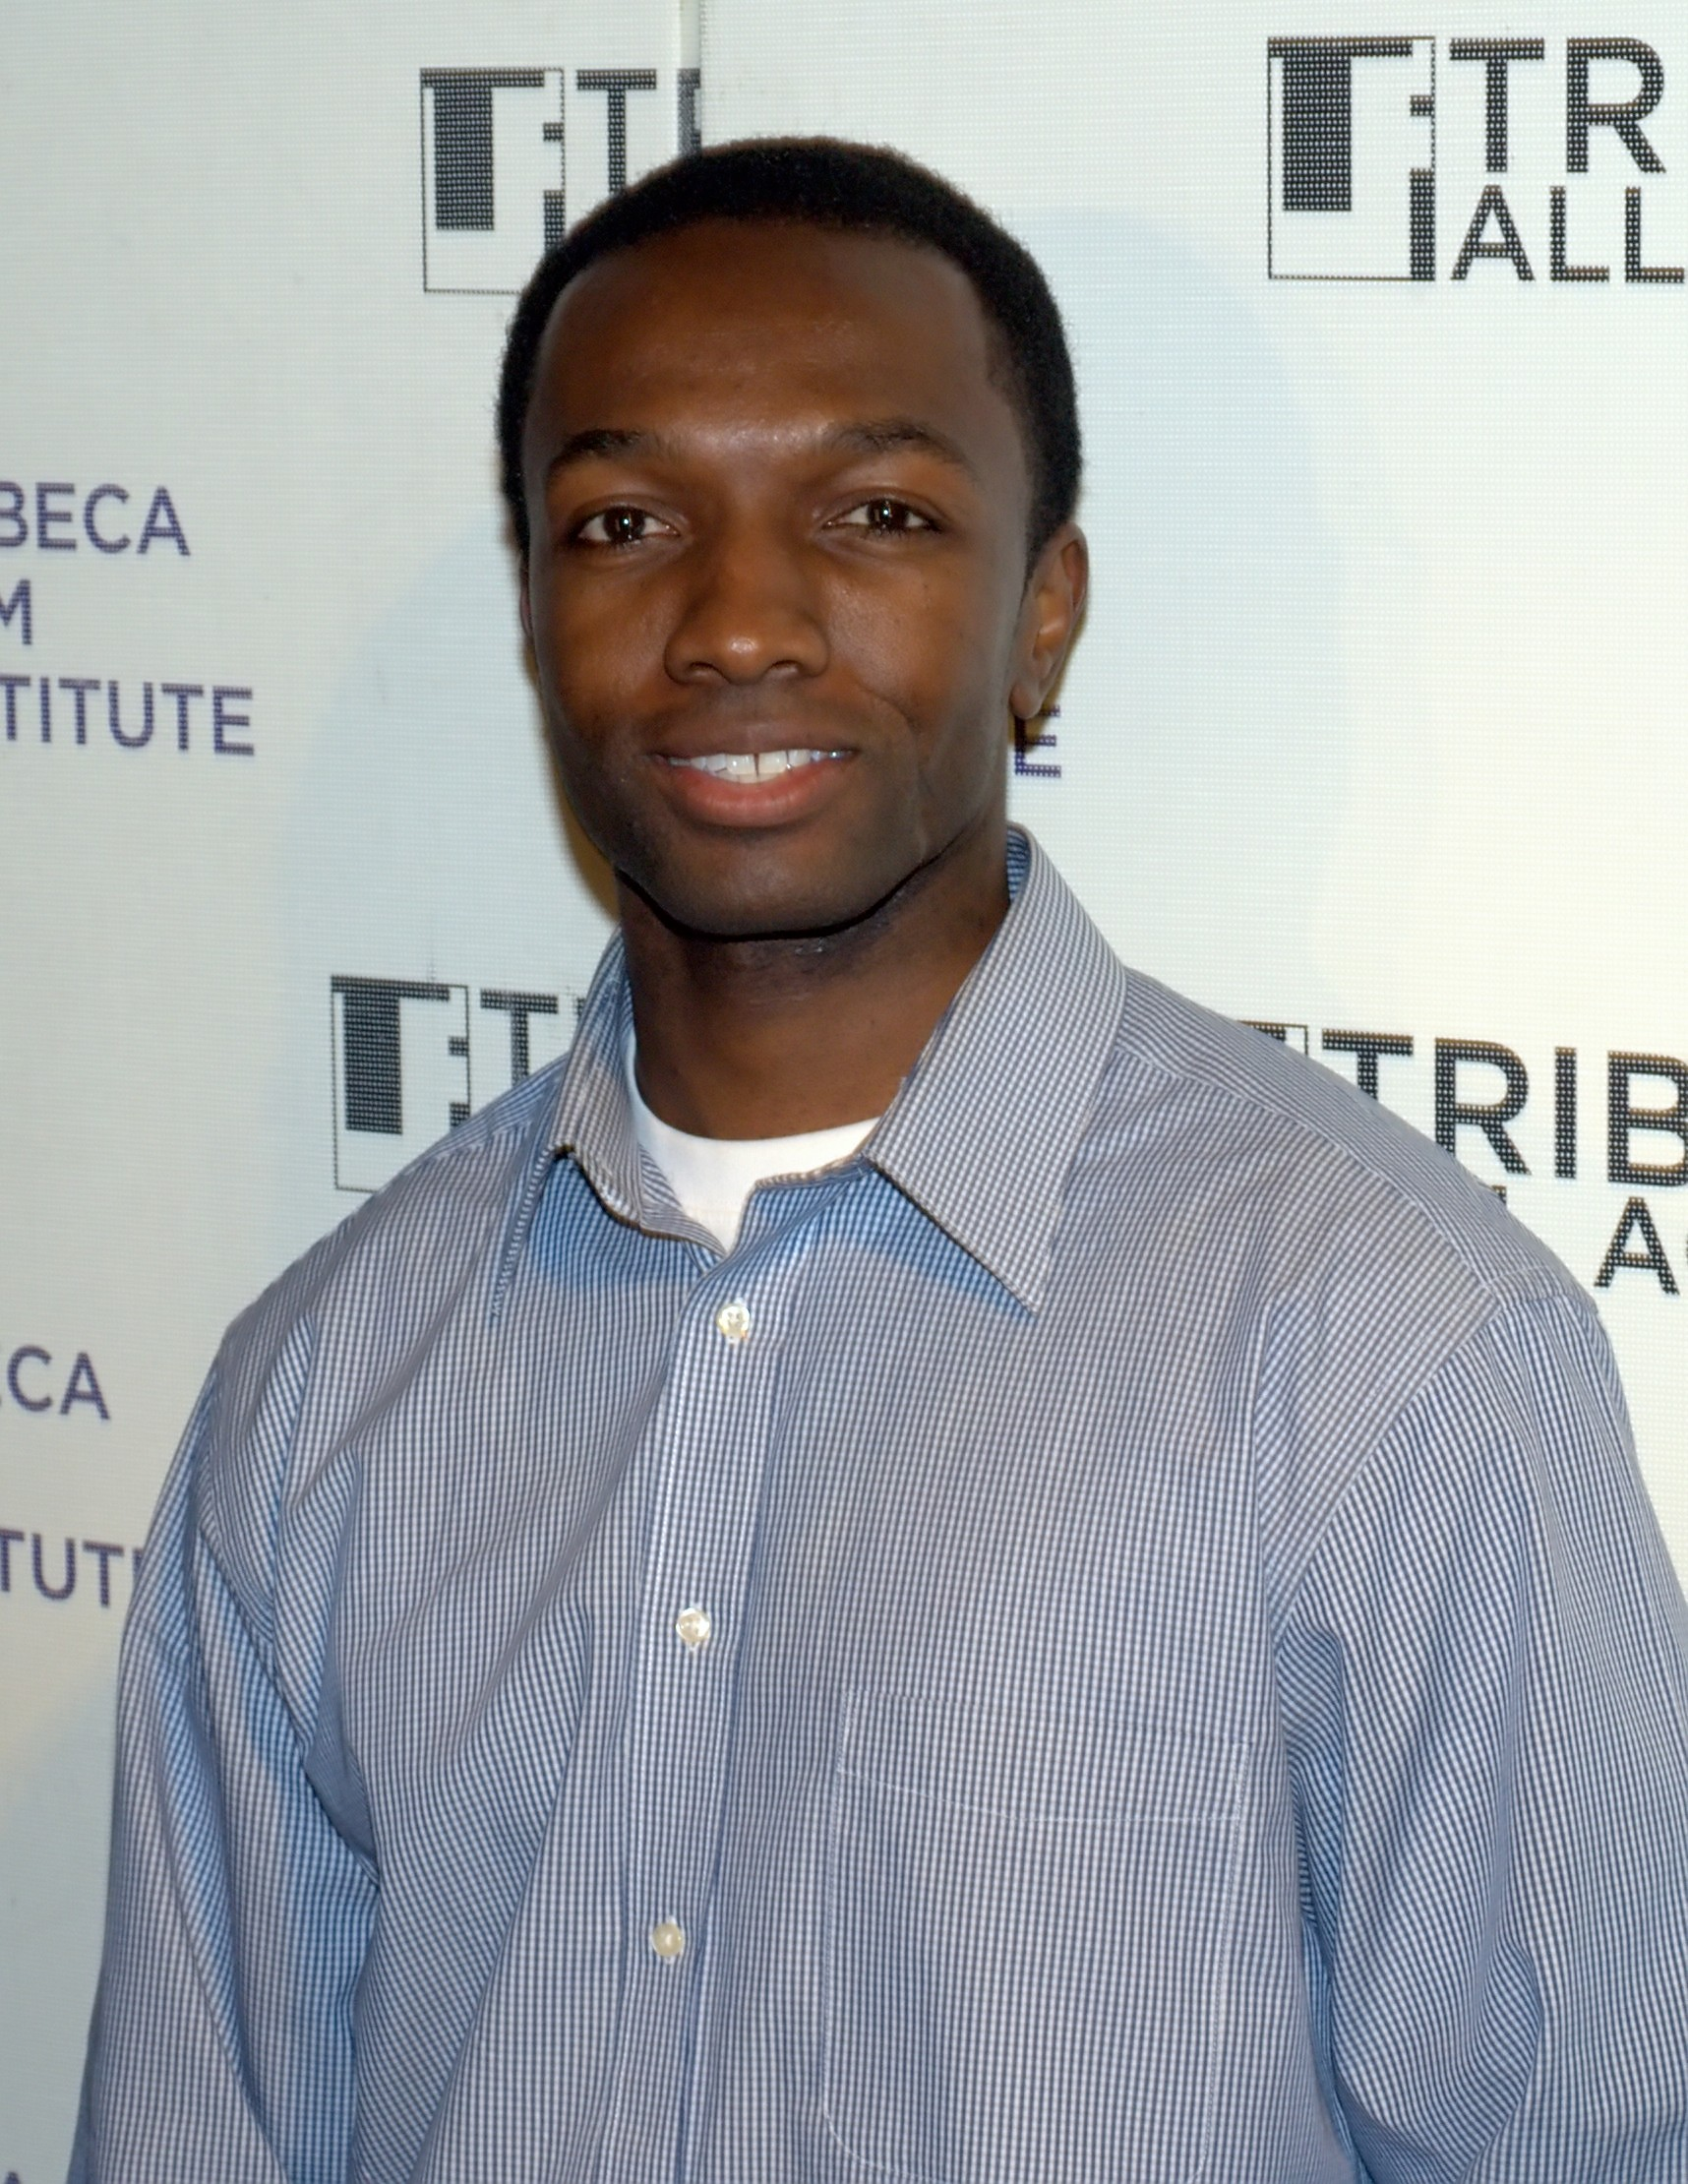 jamie hector marriedjamie hector instagram, jamie hector, jamie hector wife, jamie hector interview, jamie hector wiki, jamie hector twitter, jamie hector net worth, jamie hector imdb, jamie hector facial scar, jamie hector bosch, jamie hector wedding, jamie hector height, jamie hector married, jamie hector heroes, jamie hector paid in full, jamie hector wife photo, jamie hector movies, jamie hector story, jamie hector person of interest